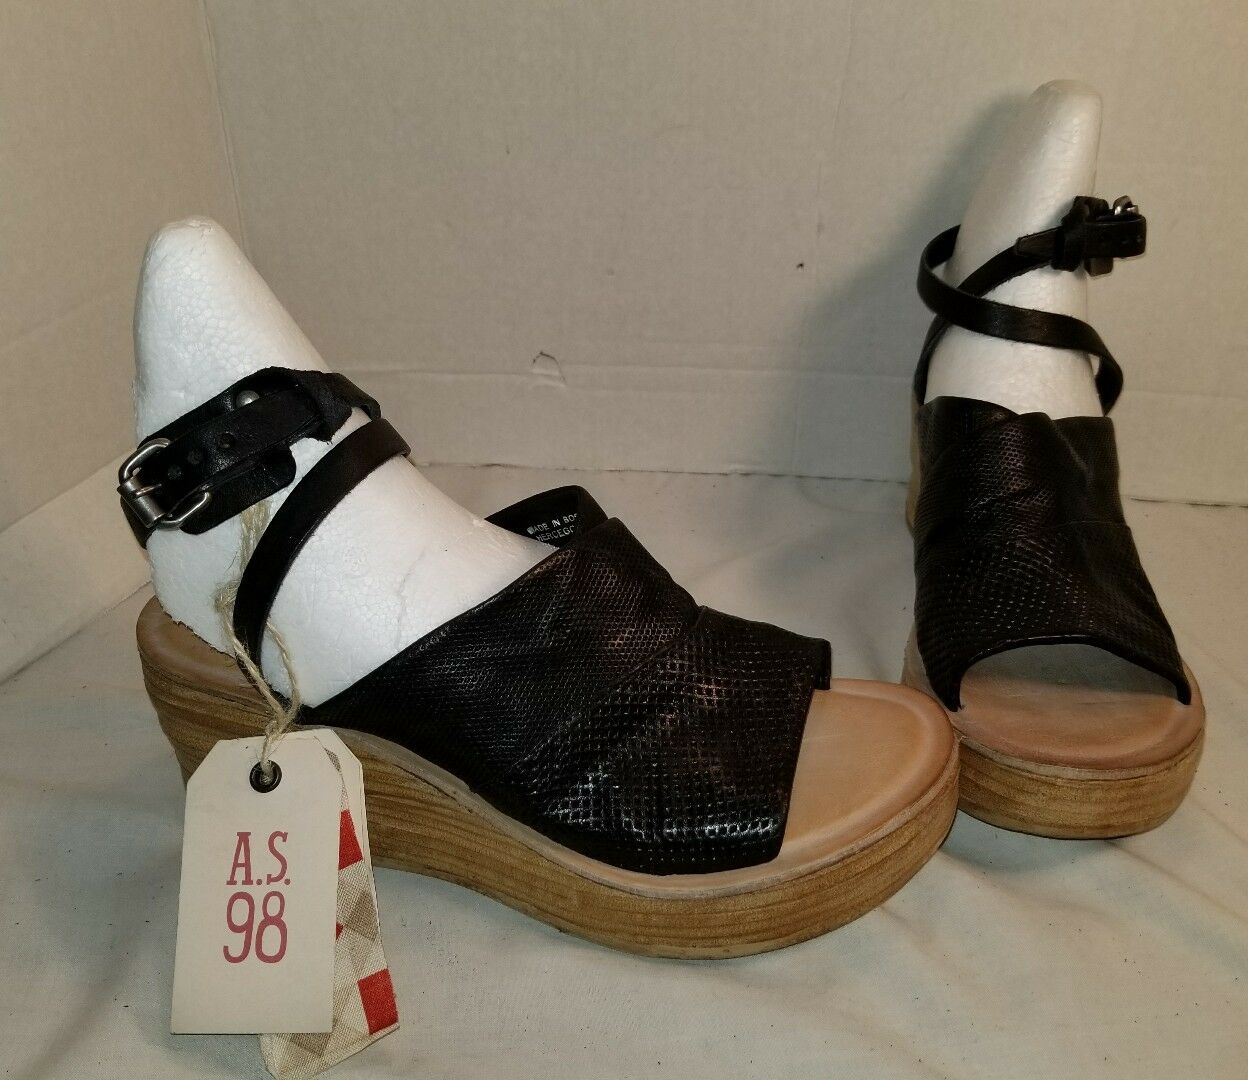 NEW AS 98 NIALL BLACK LEATHER PLATFORM WEDGE SANDALS US 10 EUR 40